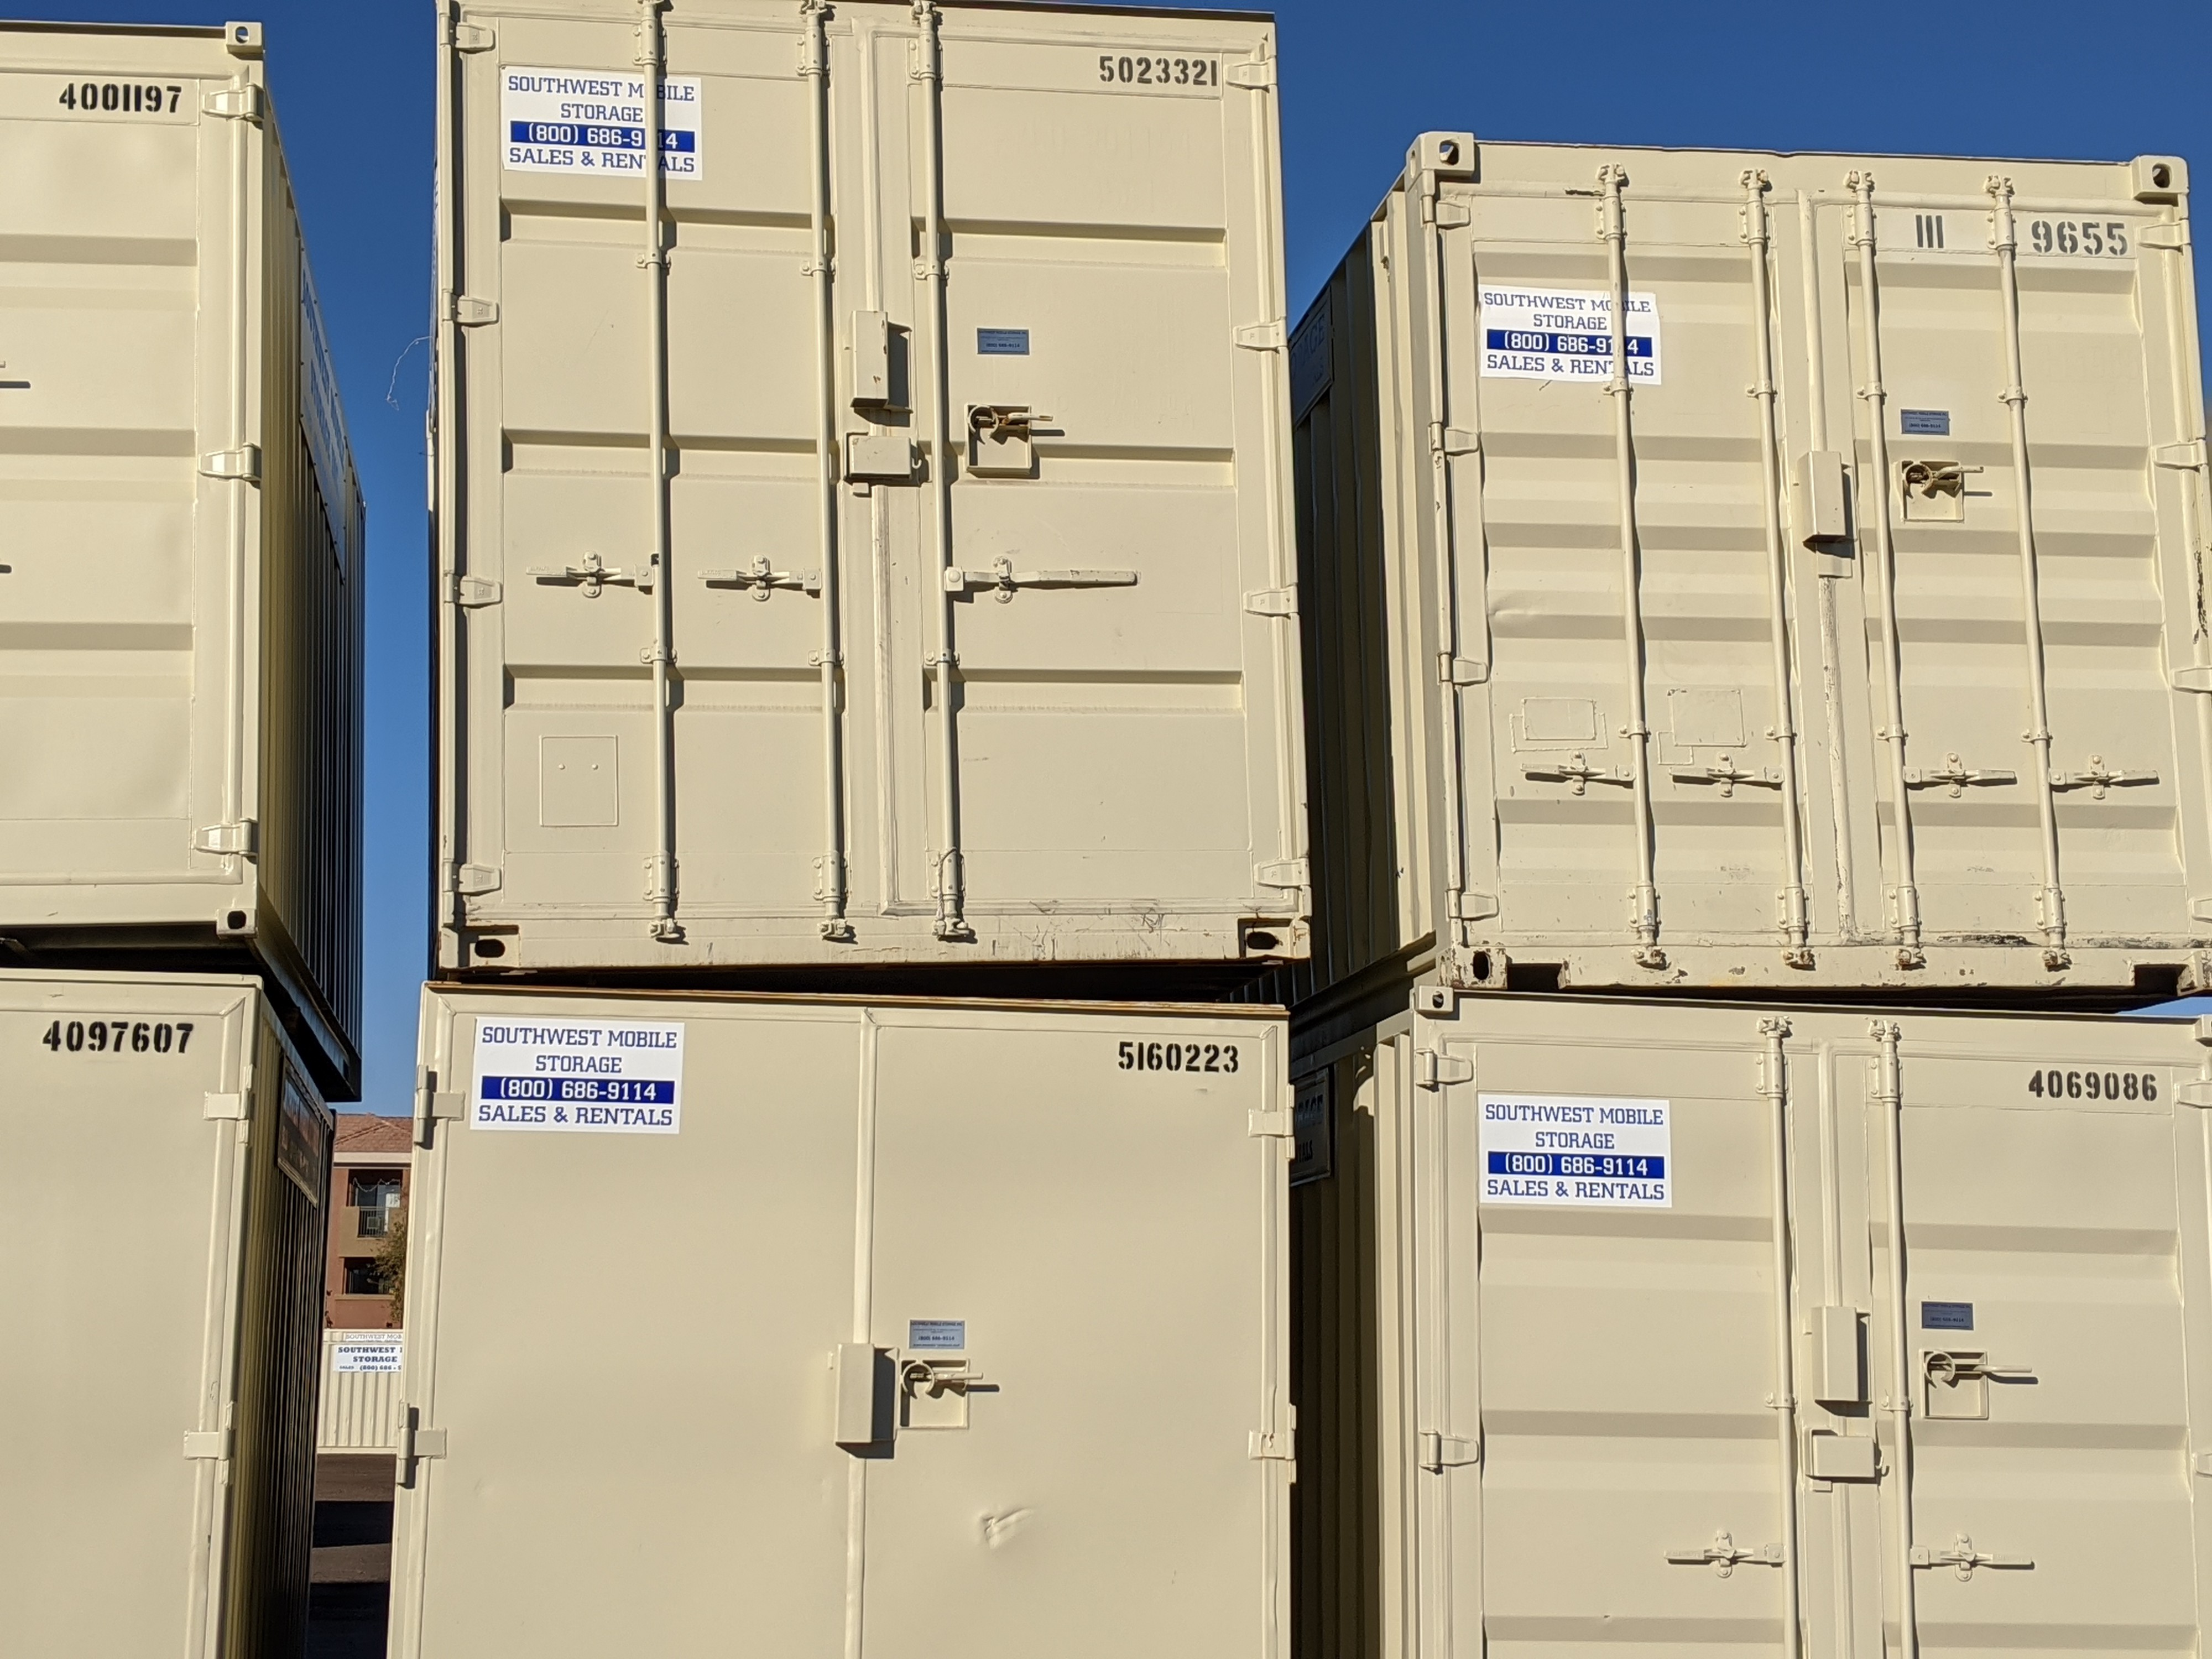 Southwest Mobile Storage Containers